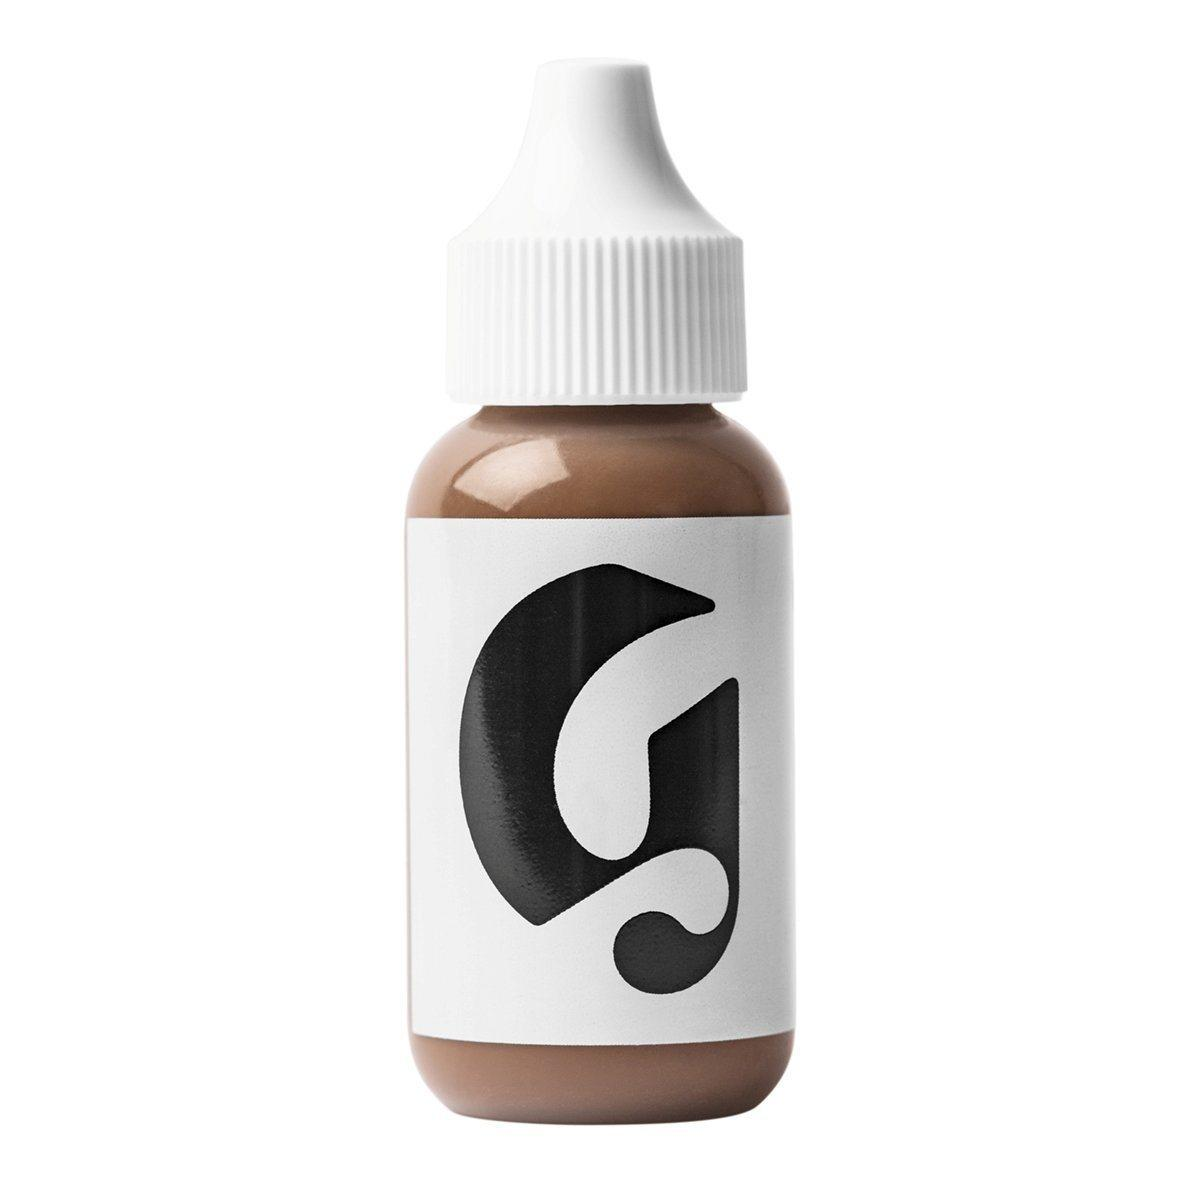 Glossier Perfecting Skin Tint G3